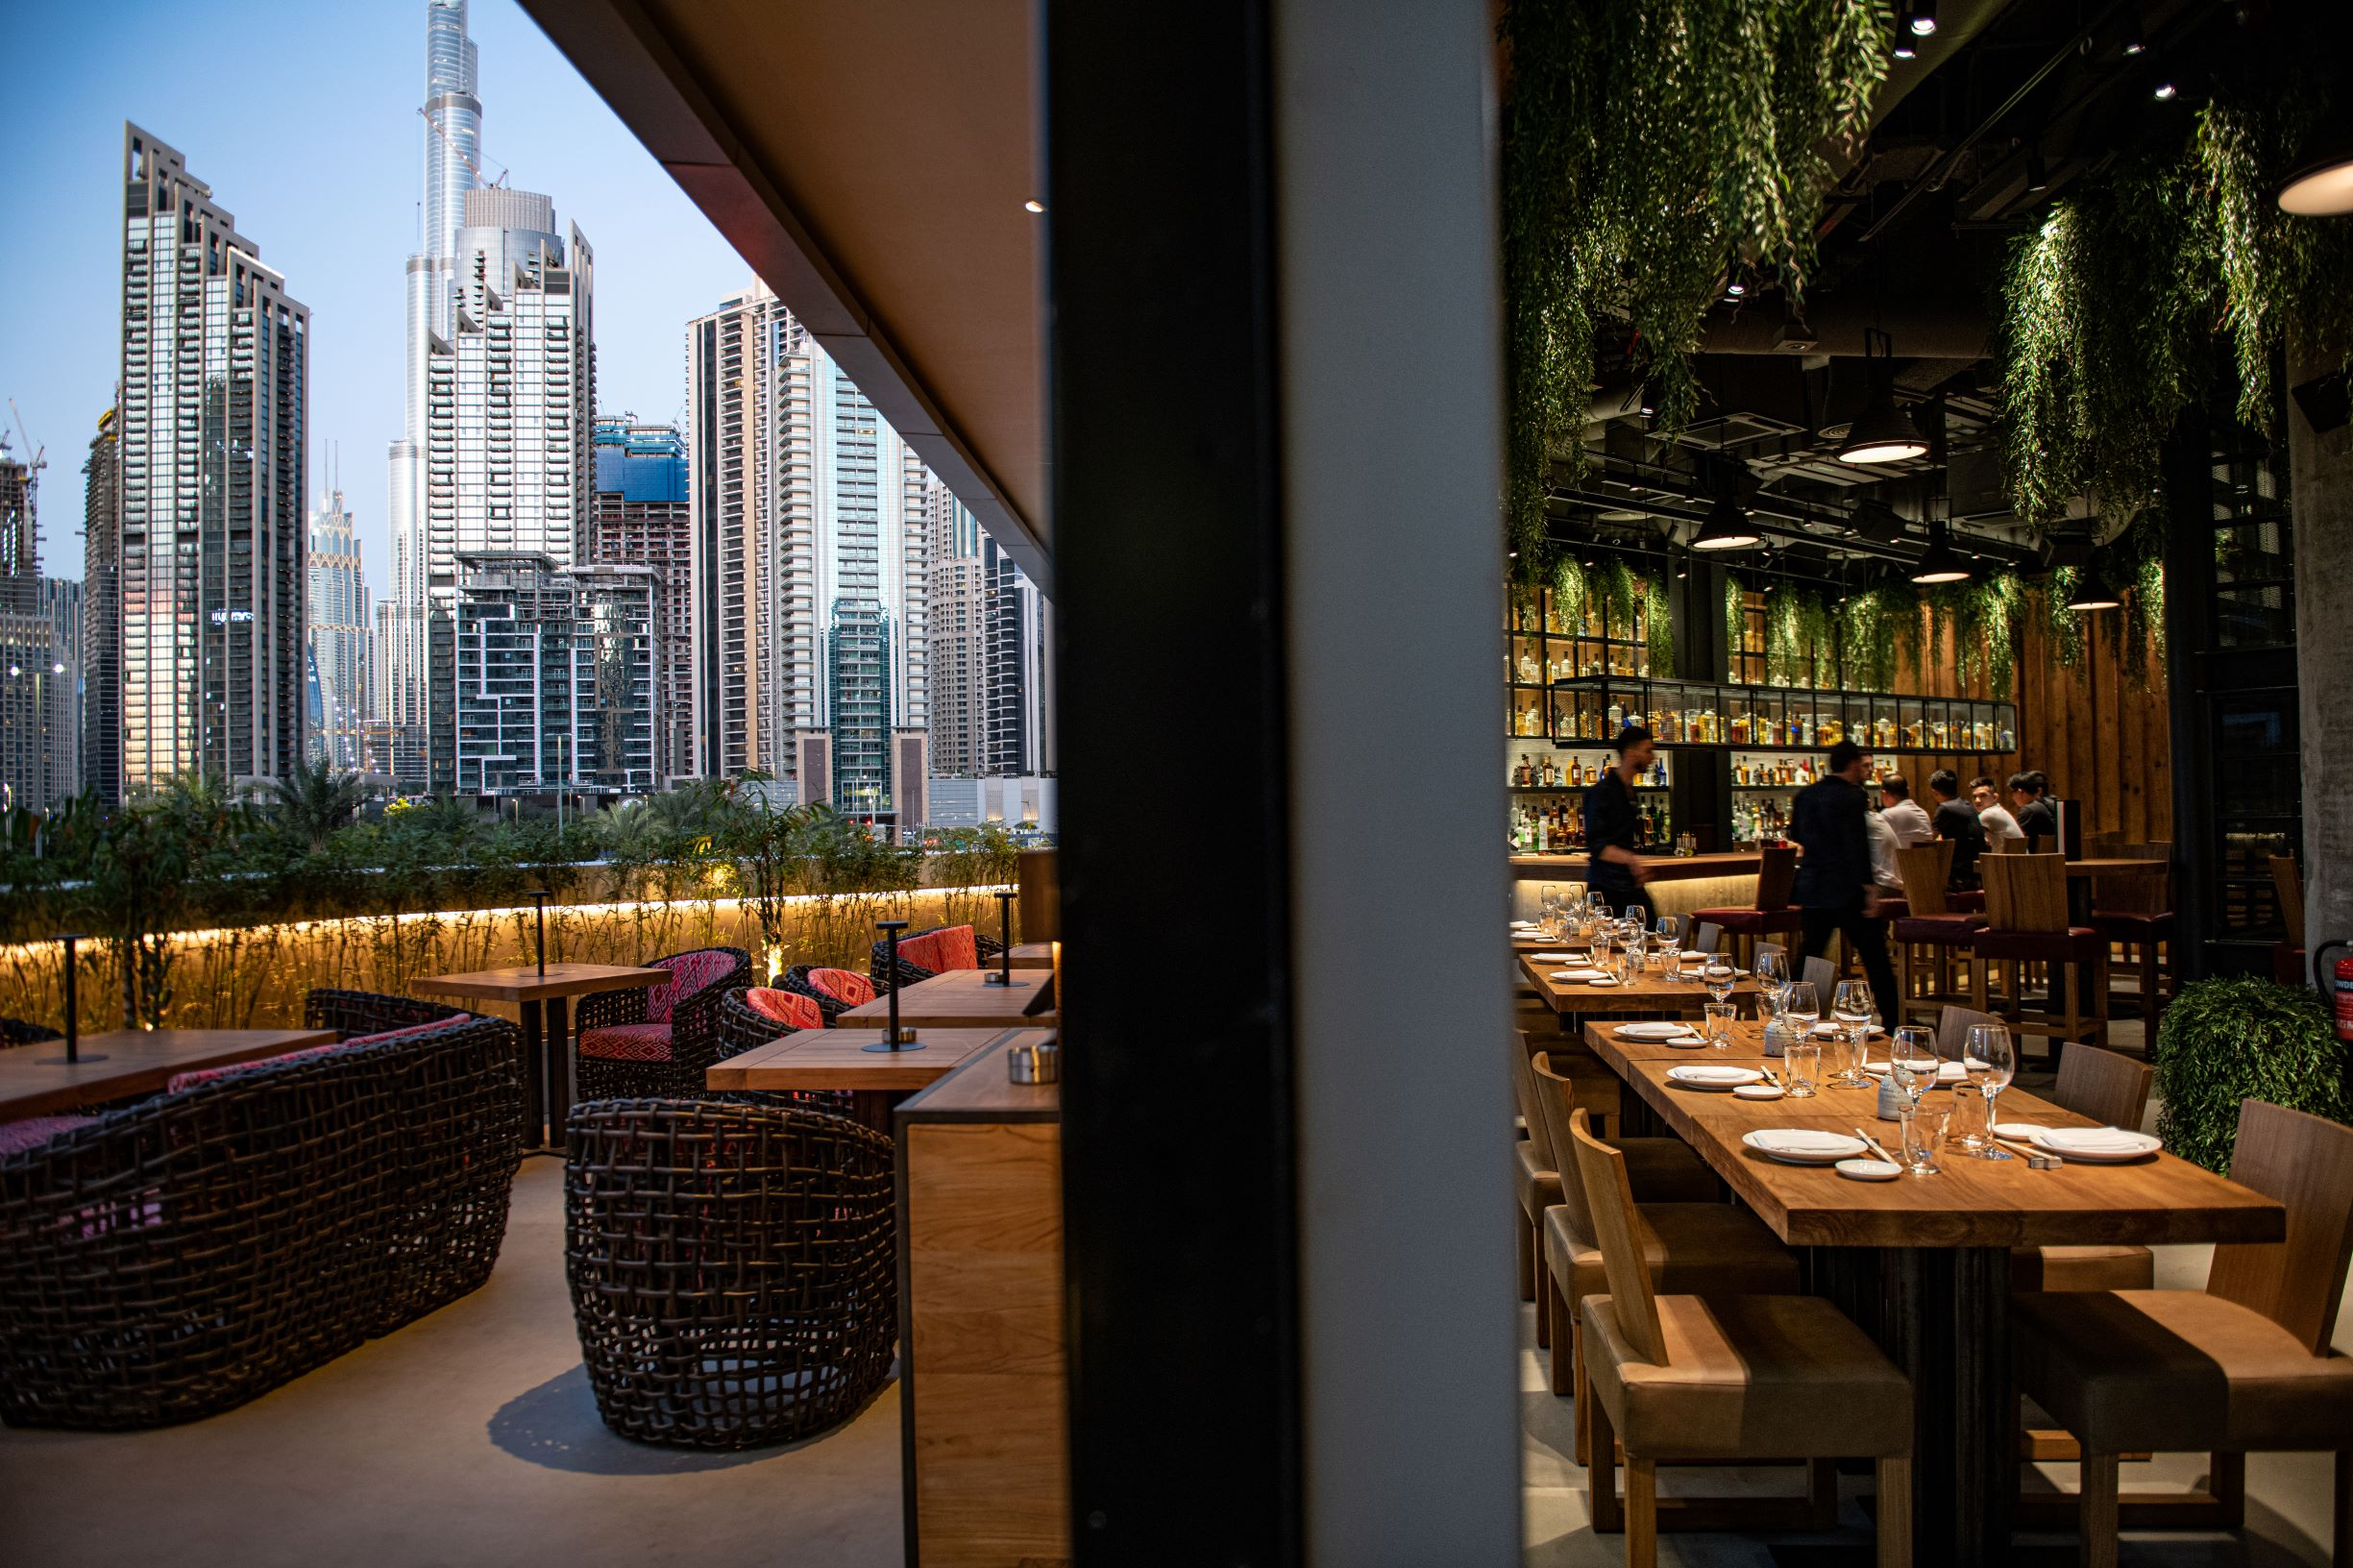 Floor to ceiling windows at Roka Dubai reveal views of Dubai's skyline